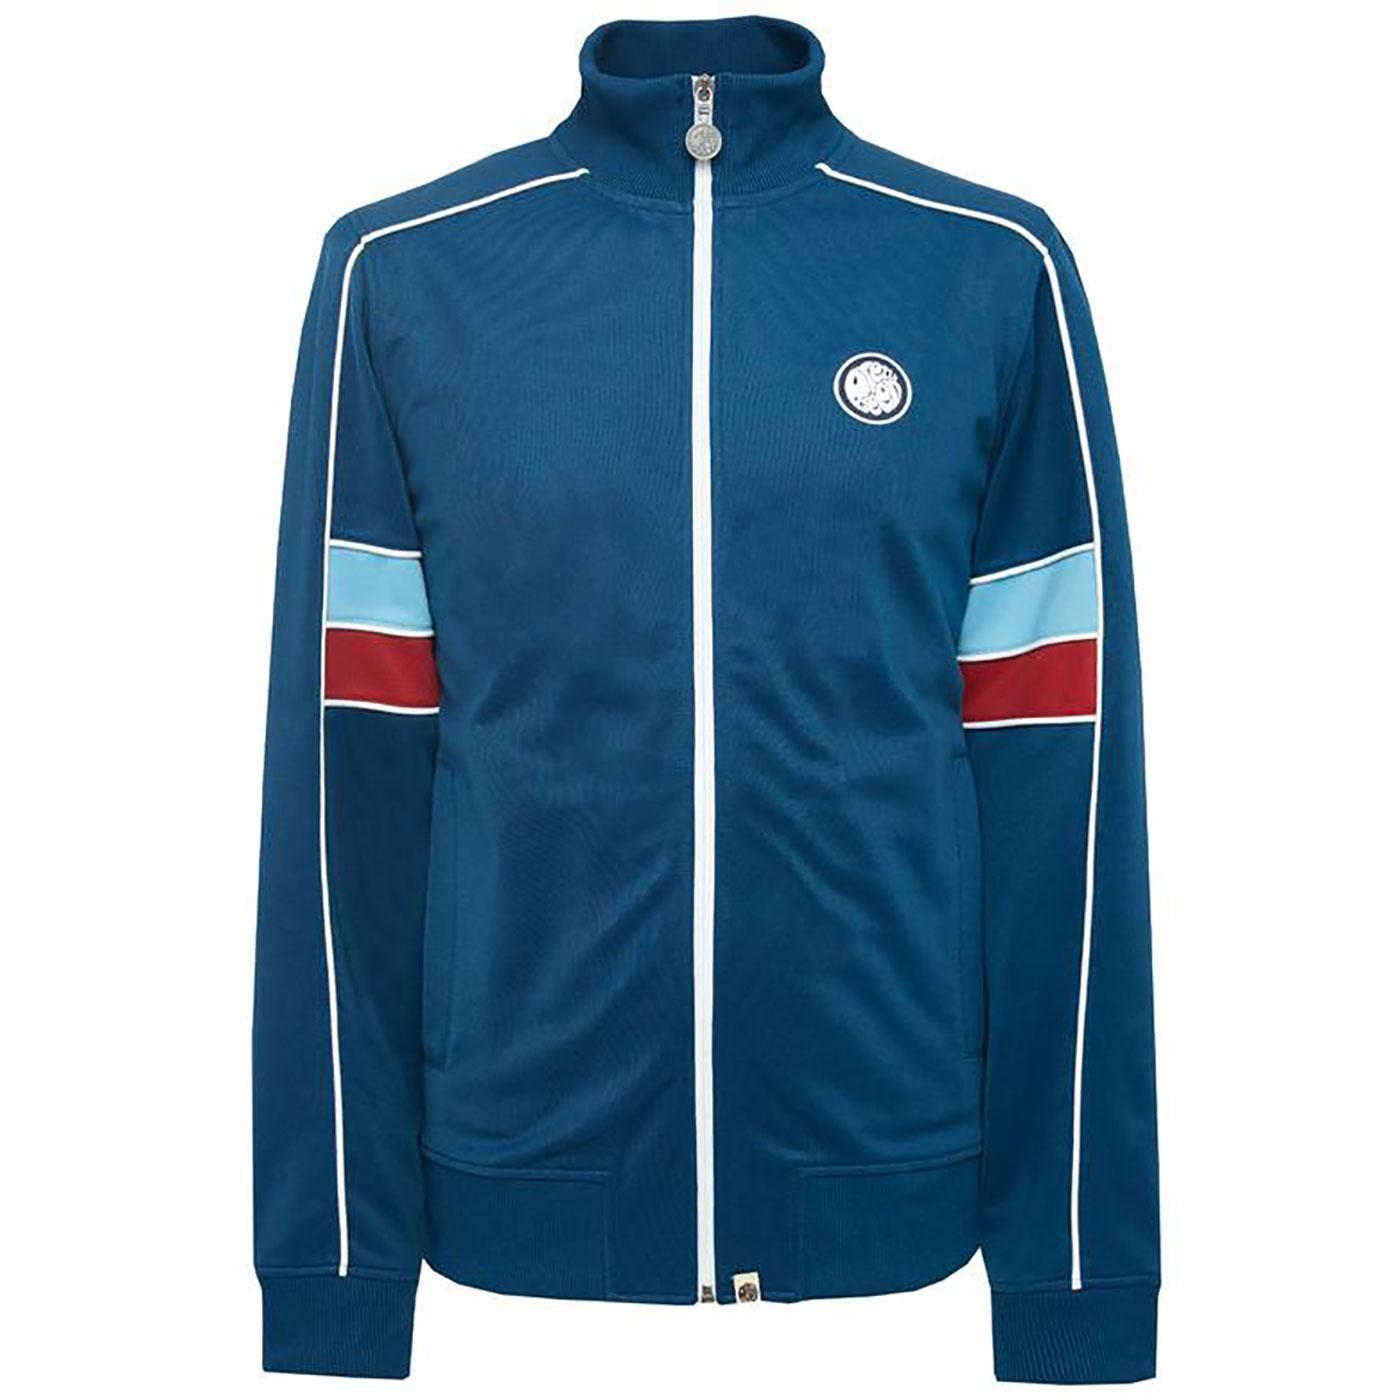 PRETTY GREEN Men's Retro Piped Panel Track Top N